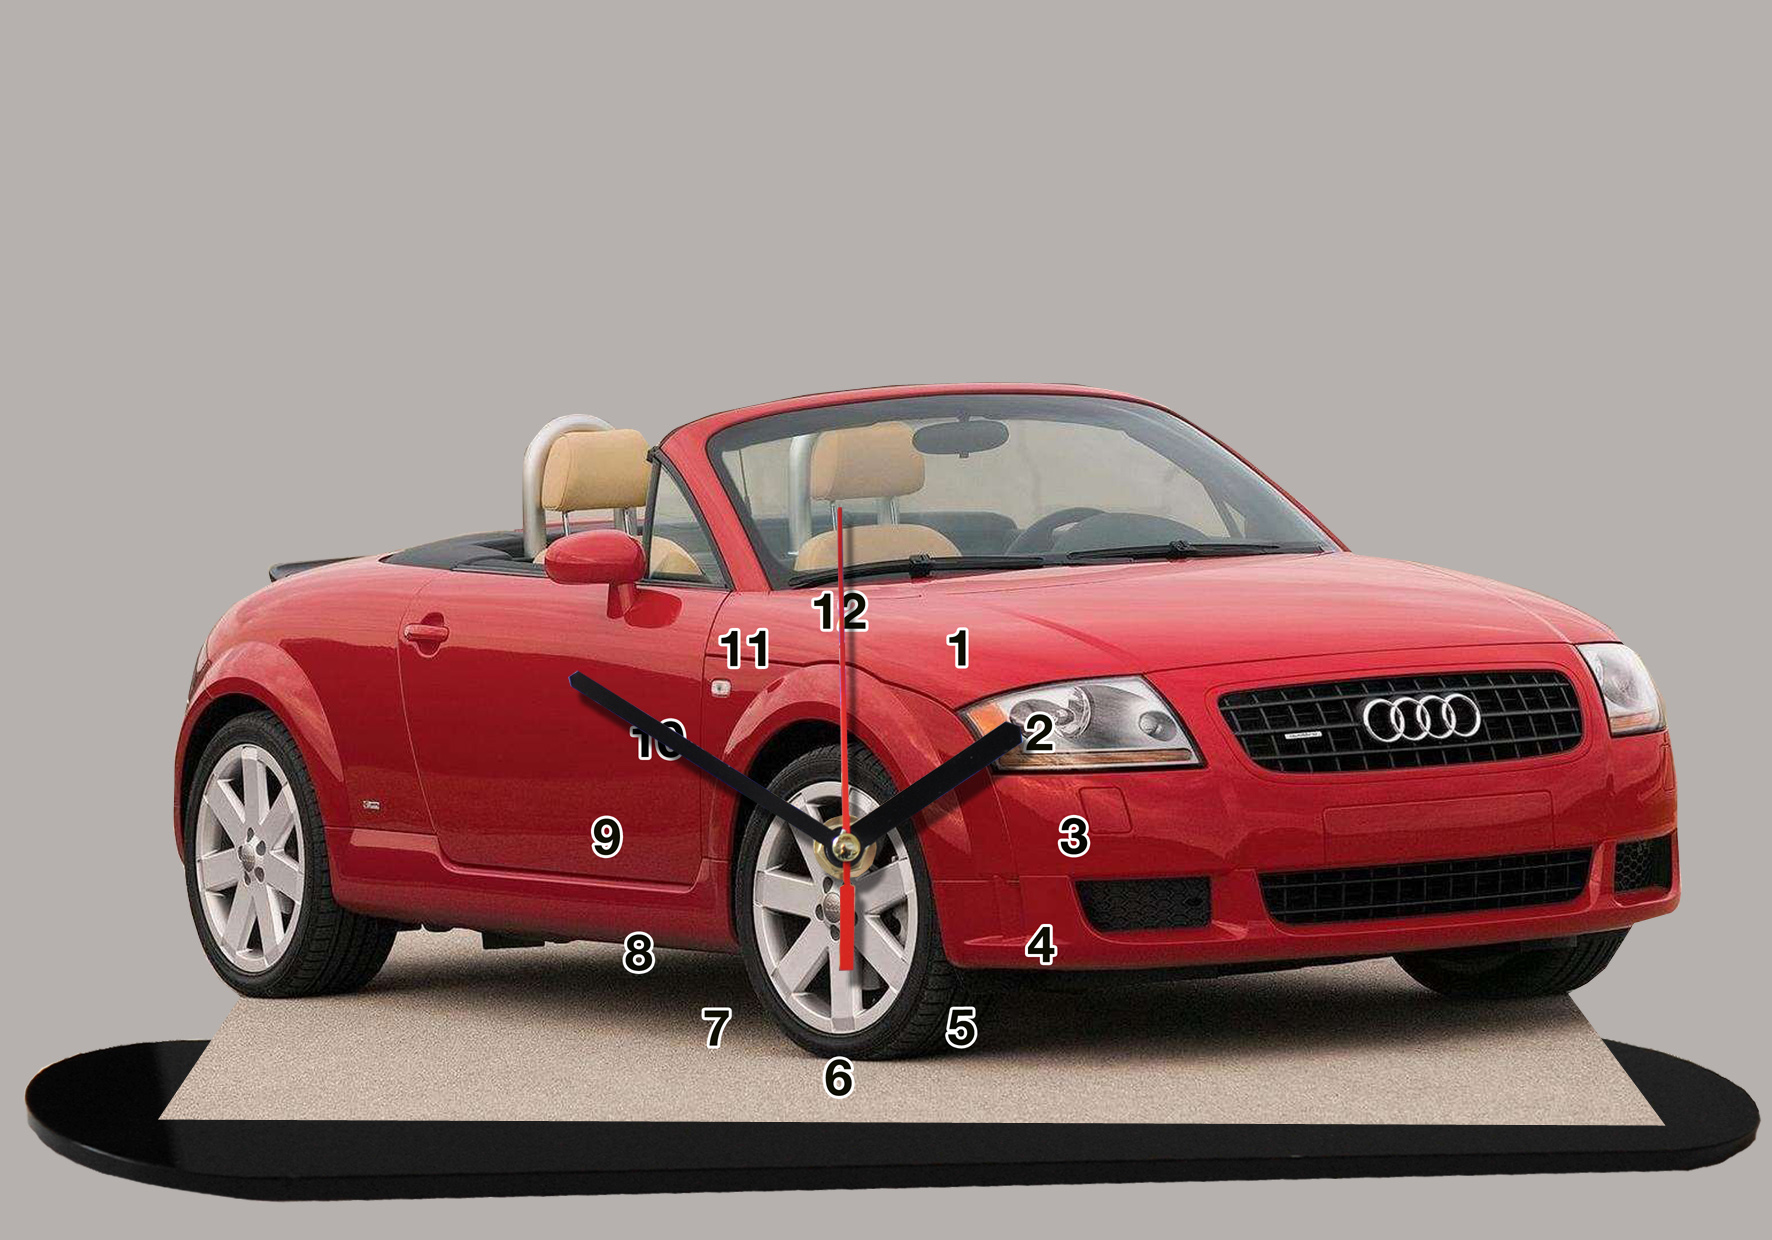 audi tt cabriolet rouge 04 en auto horloge miniature. Black Bedroom Furniture Sets. Home Design Ideas